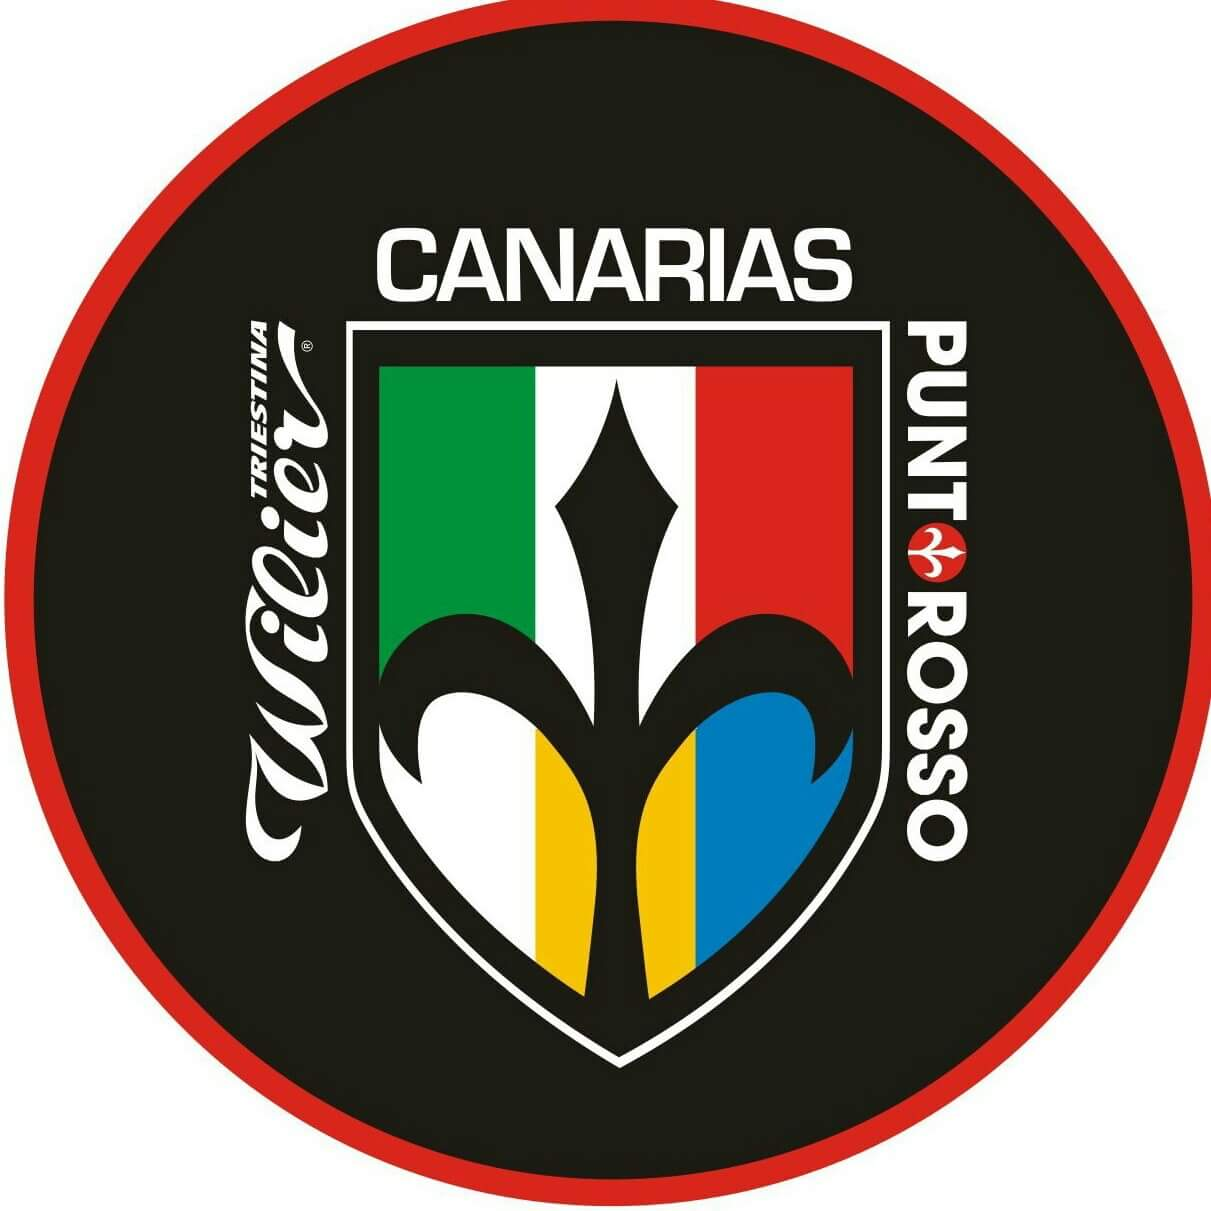 WILIER CANARIAS